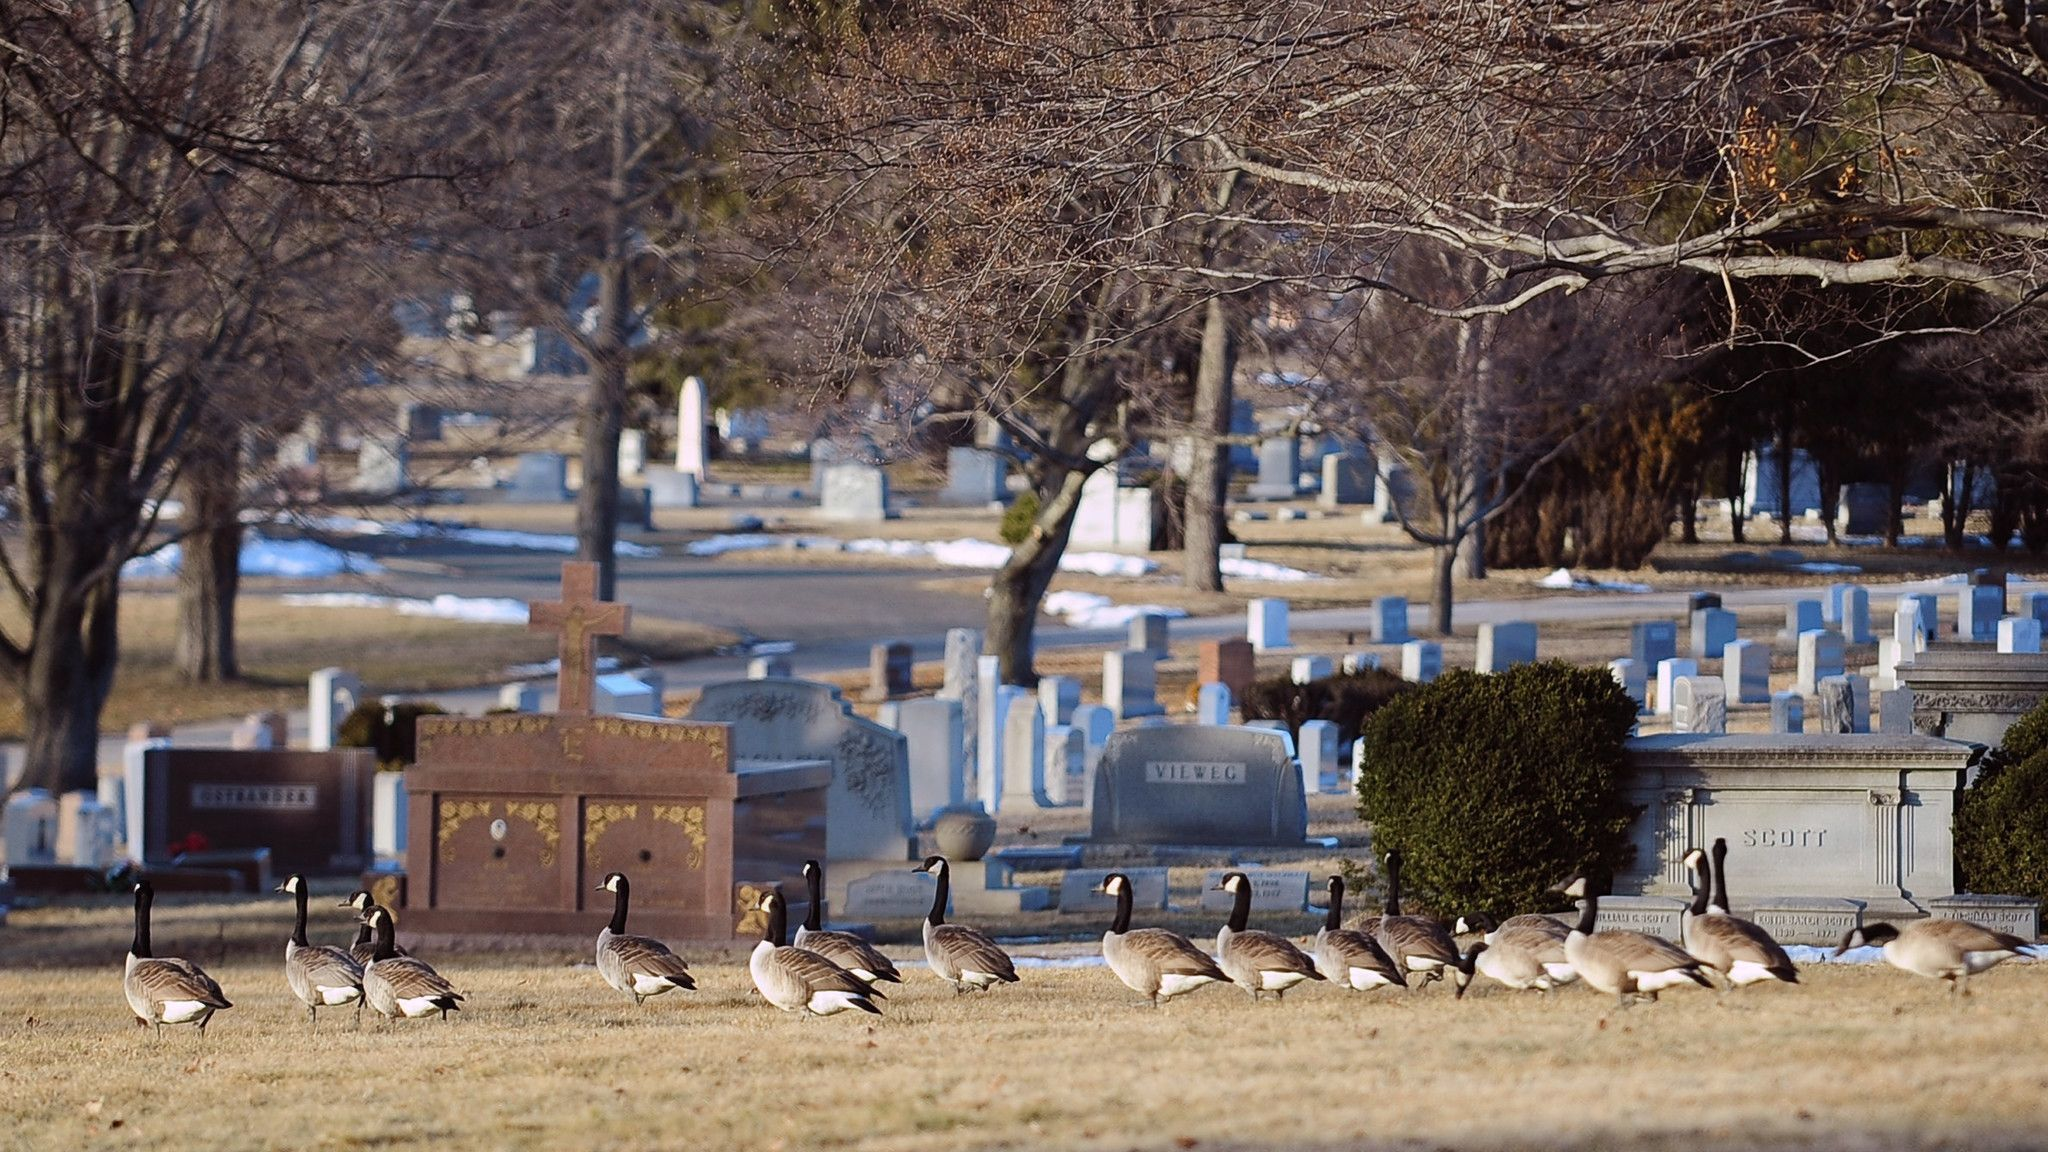 State senator to withdraw bill that would allow development at Pikesville cemetery